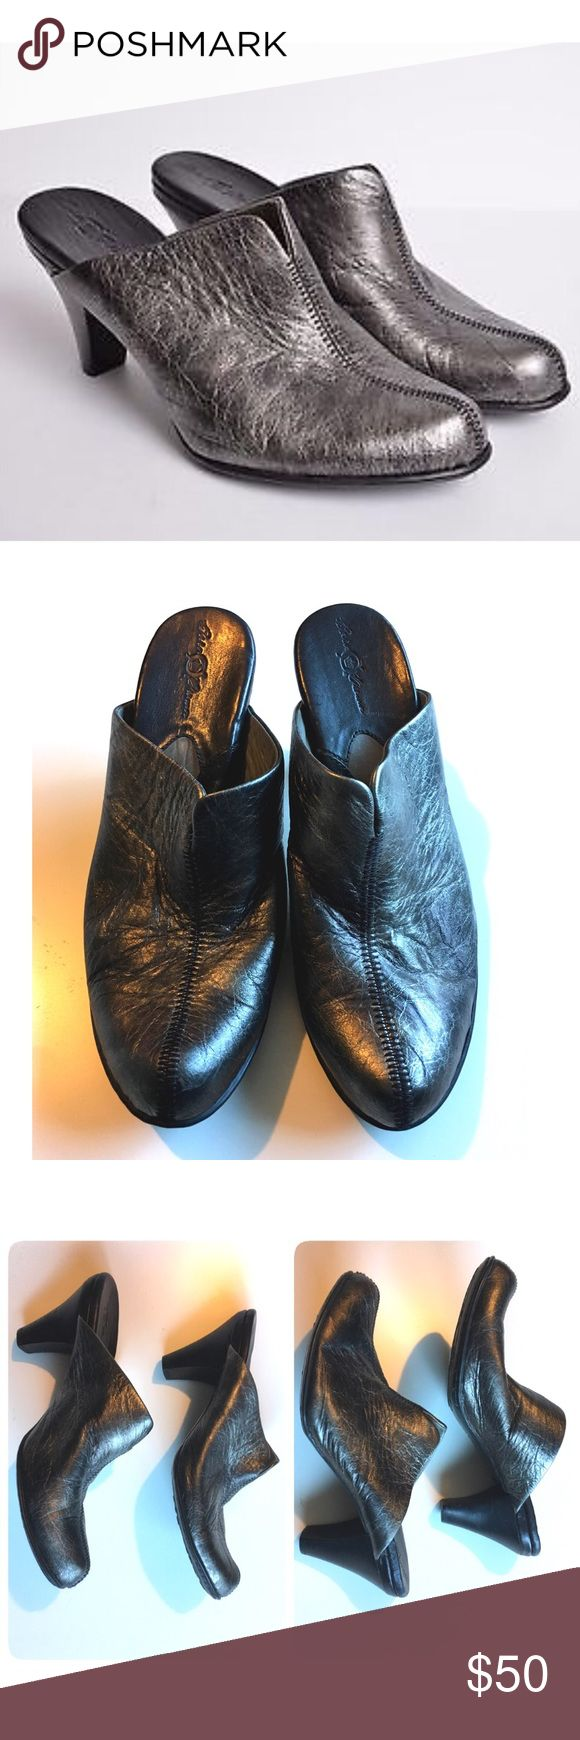 "Born Pewter Leather Mule Clog 9 Black Heel Slide Gorgeous Pewter leather upper, black heel. 3.5"" tall. Born Crown W01232. Excellent condition with minor scuffs on back of heel shown in photo 4. Born Shoes Mules & Clogs"